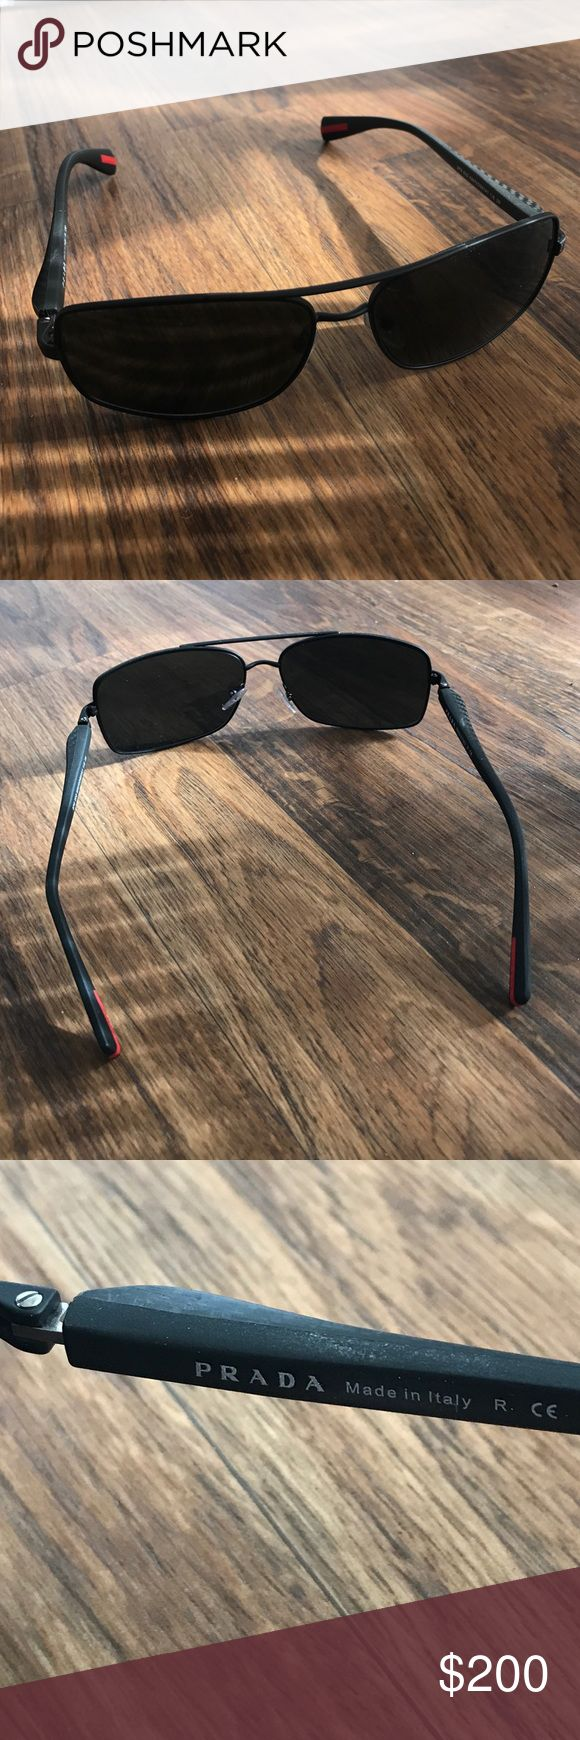 Prada men's sport sunglasses Very sporty men's Prada sunglasses. Hardly worn. Great comfortable fit. Snug and full coverage of shade. Price is negotiable! Offer up! Prada Accessories Sunglasses